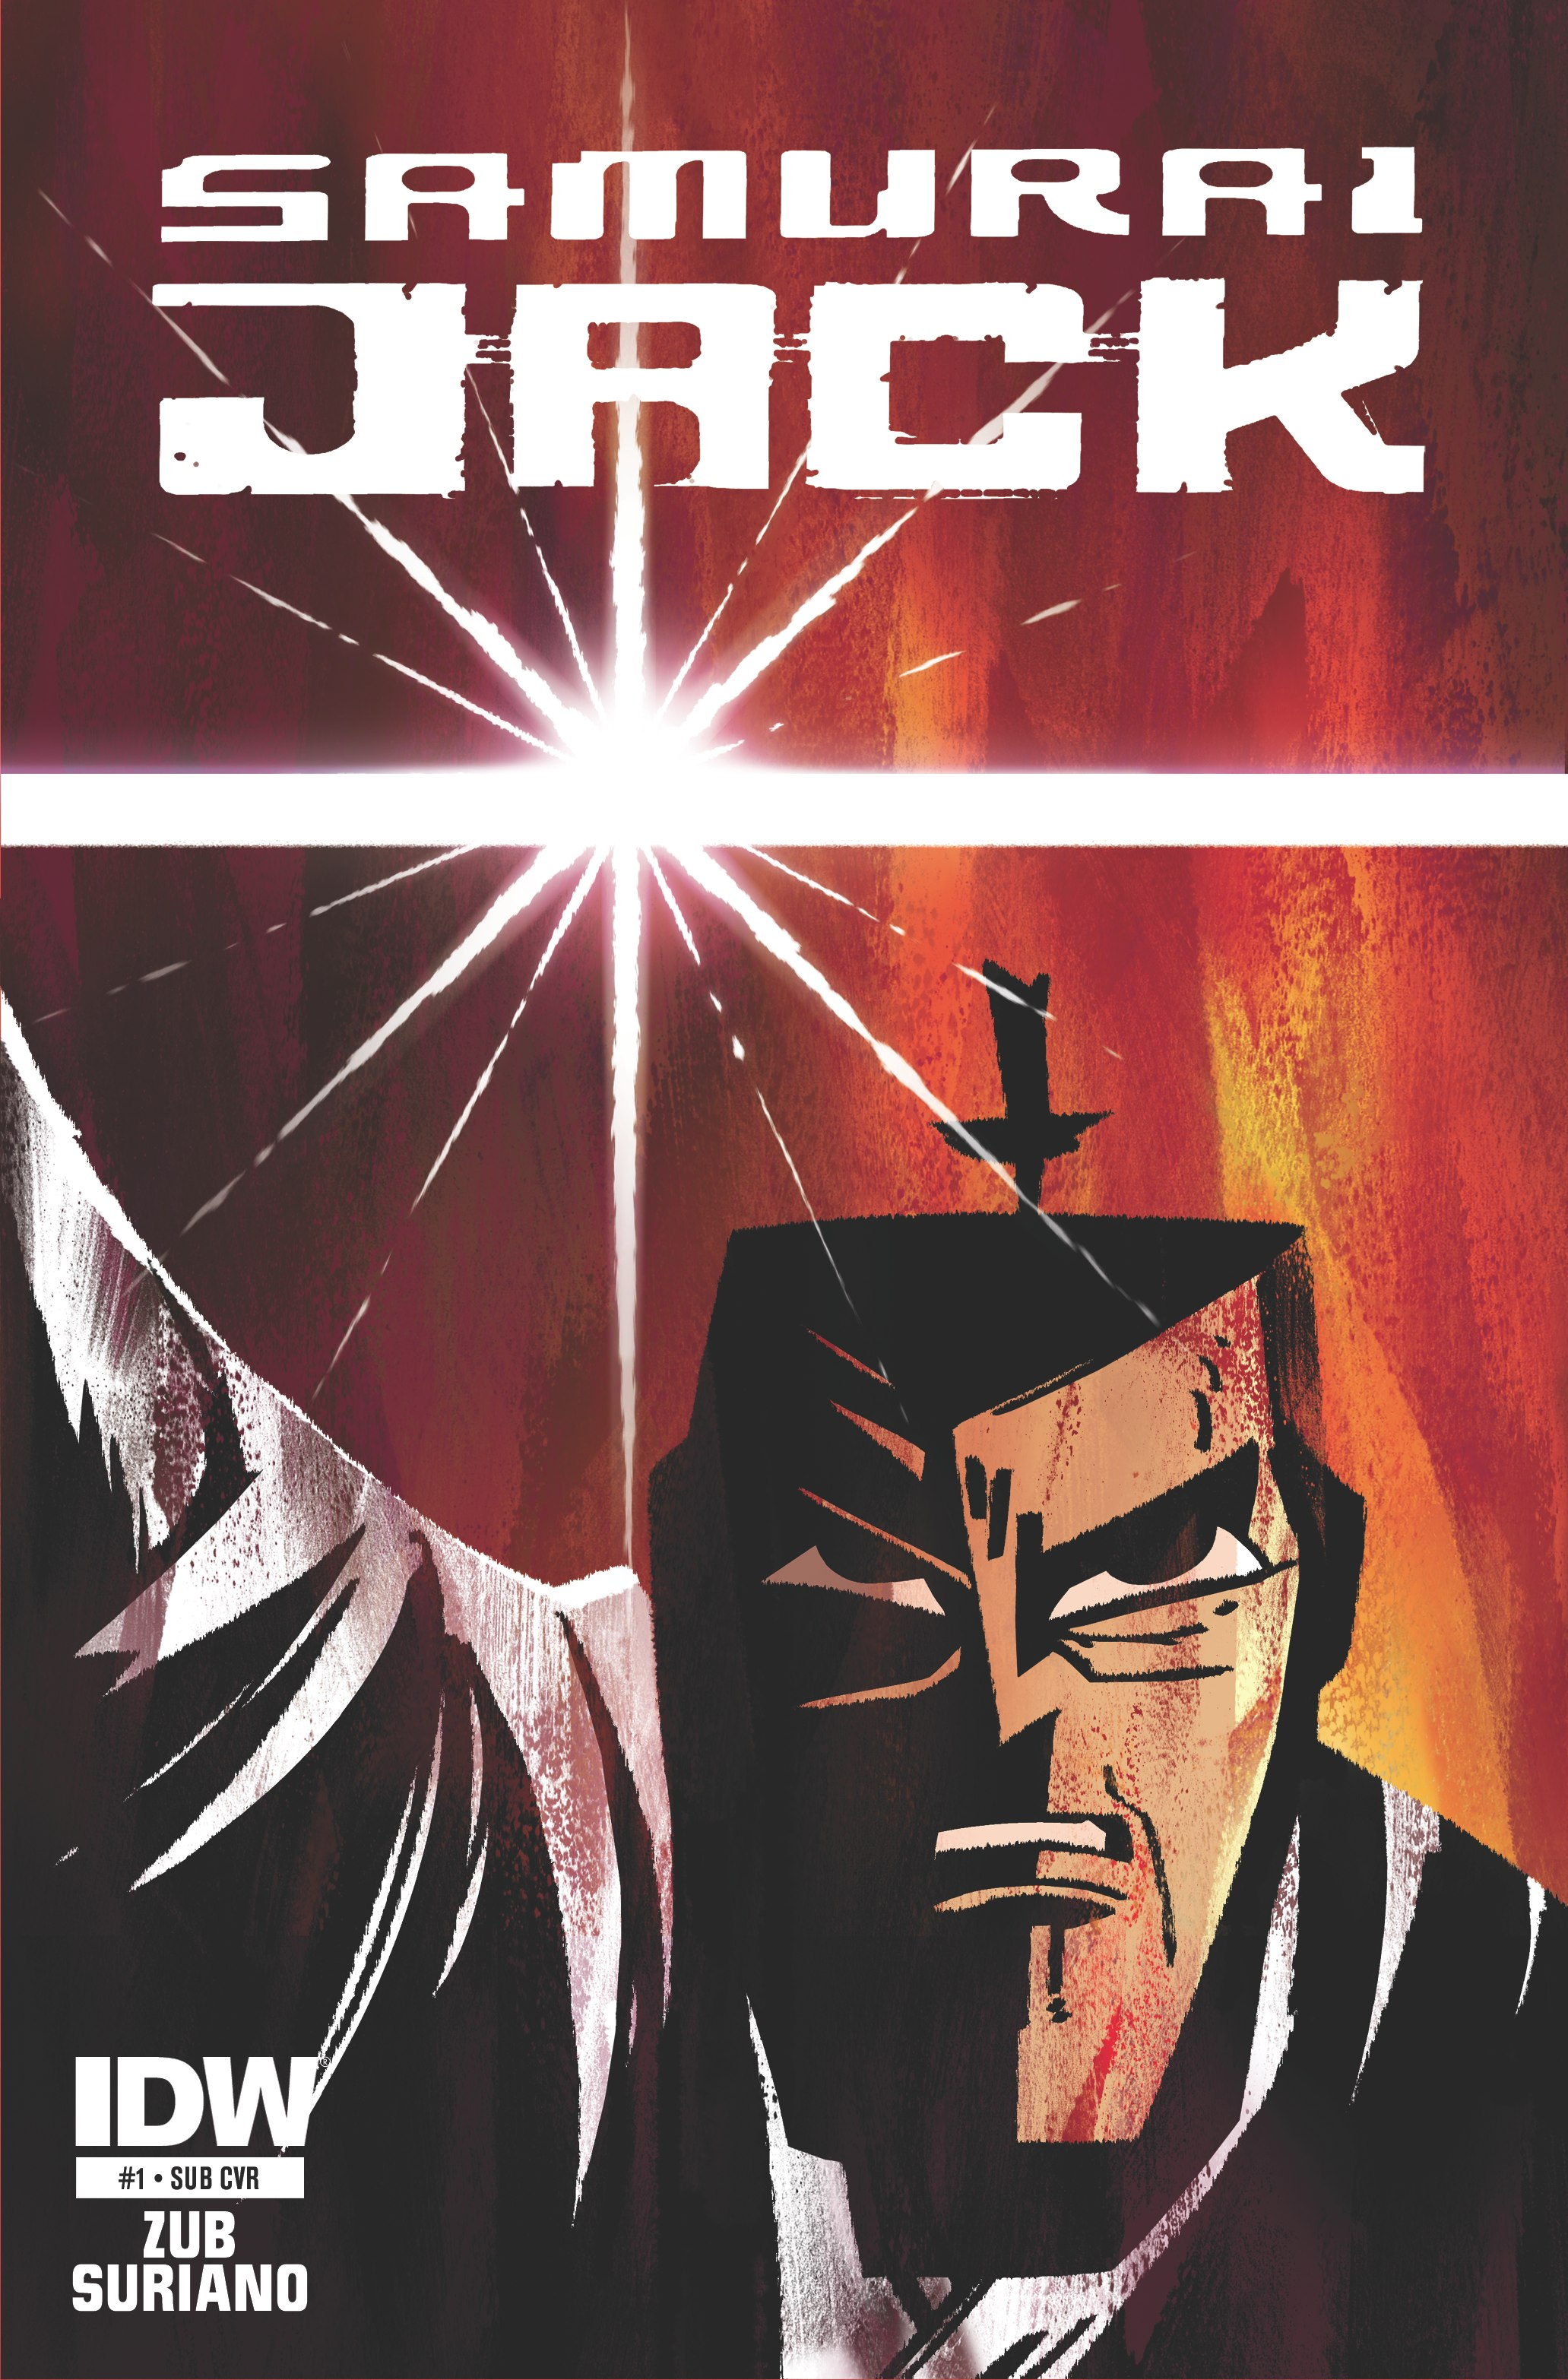 Samurai Jack Returns in Comic Book Form Thanks to IDW and Cartoon Network